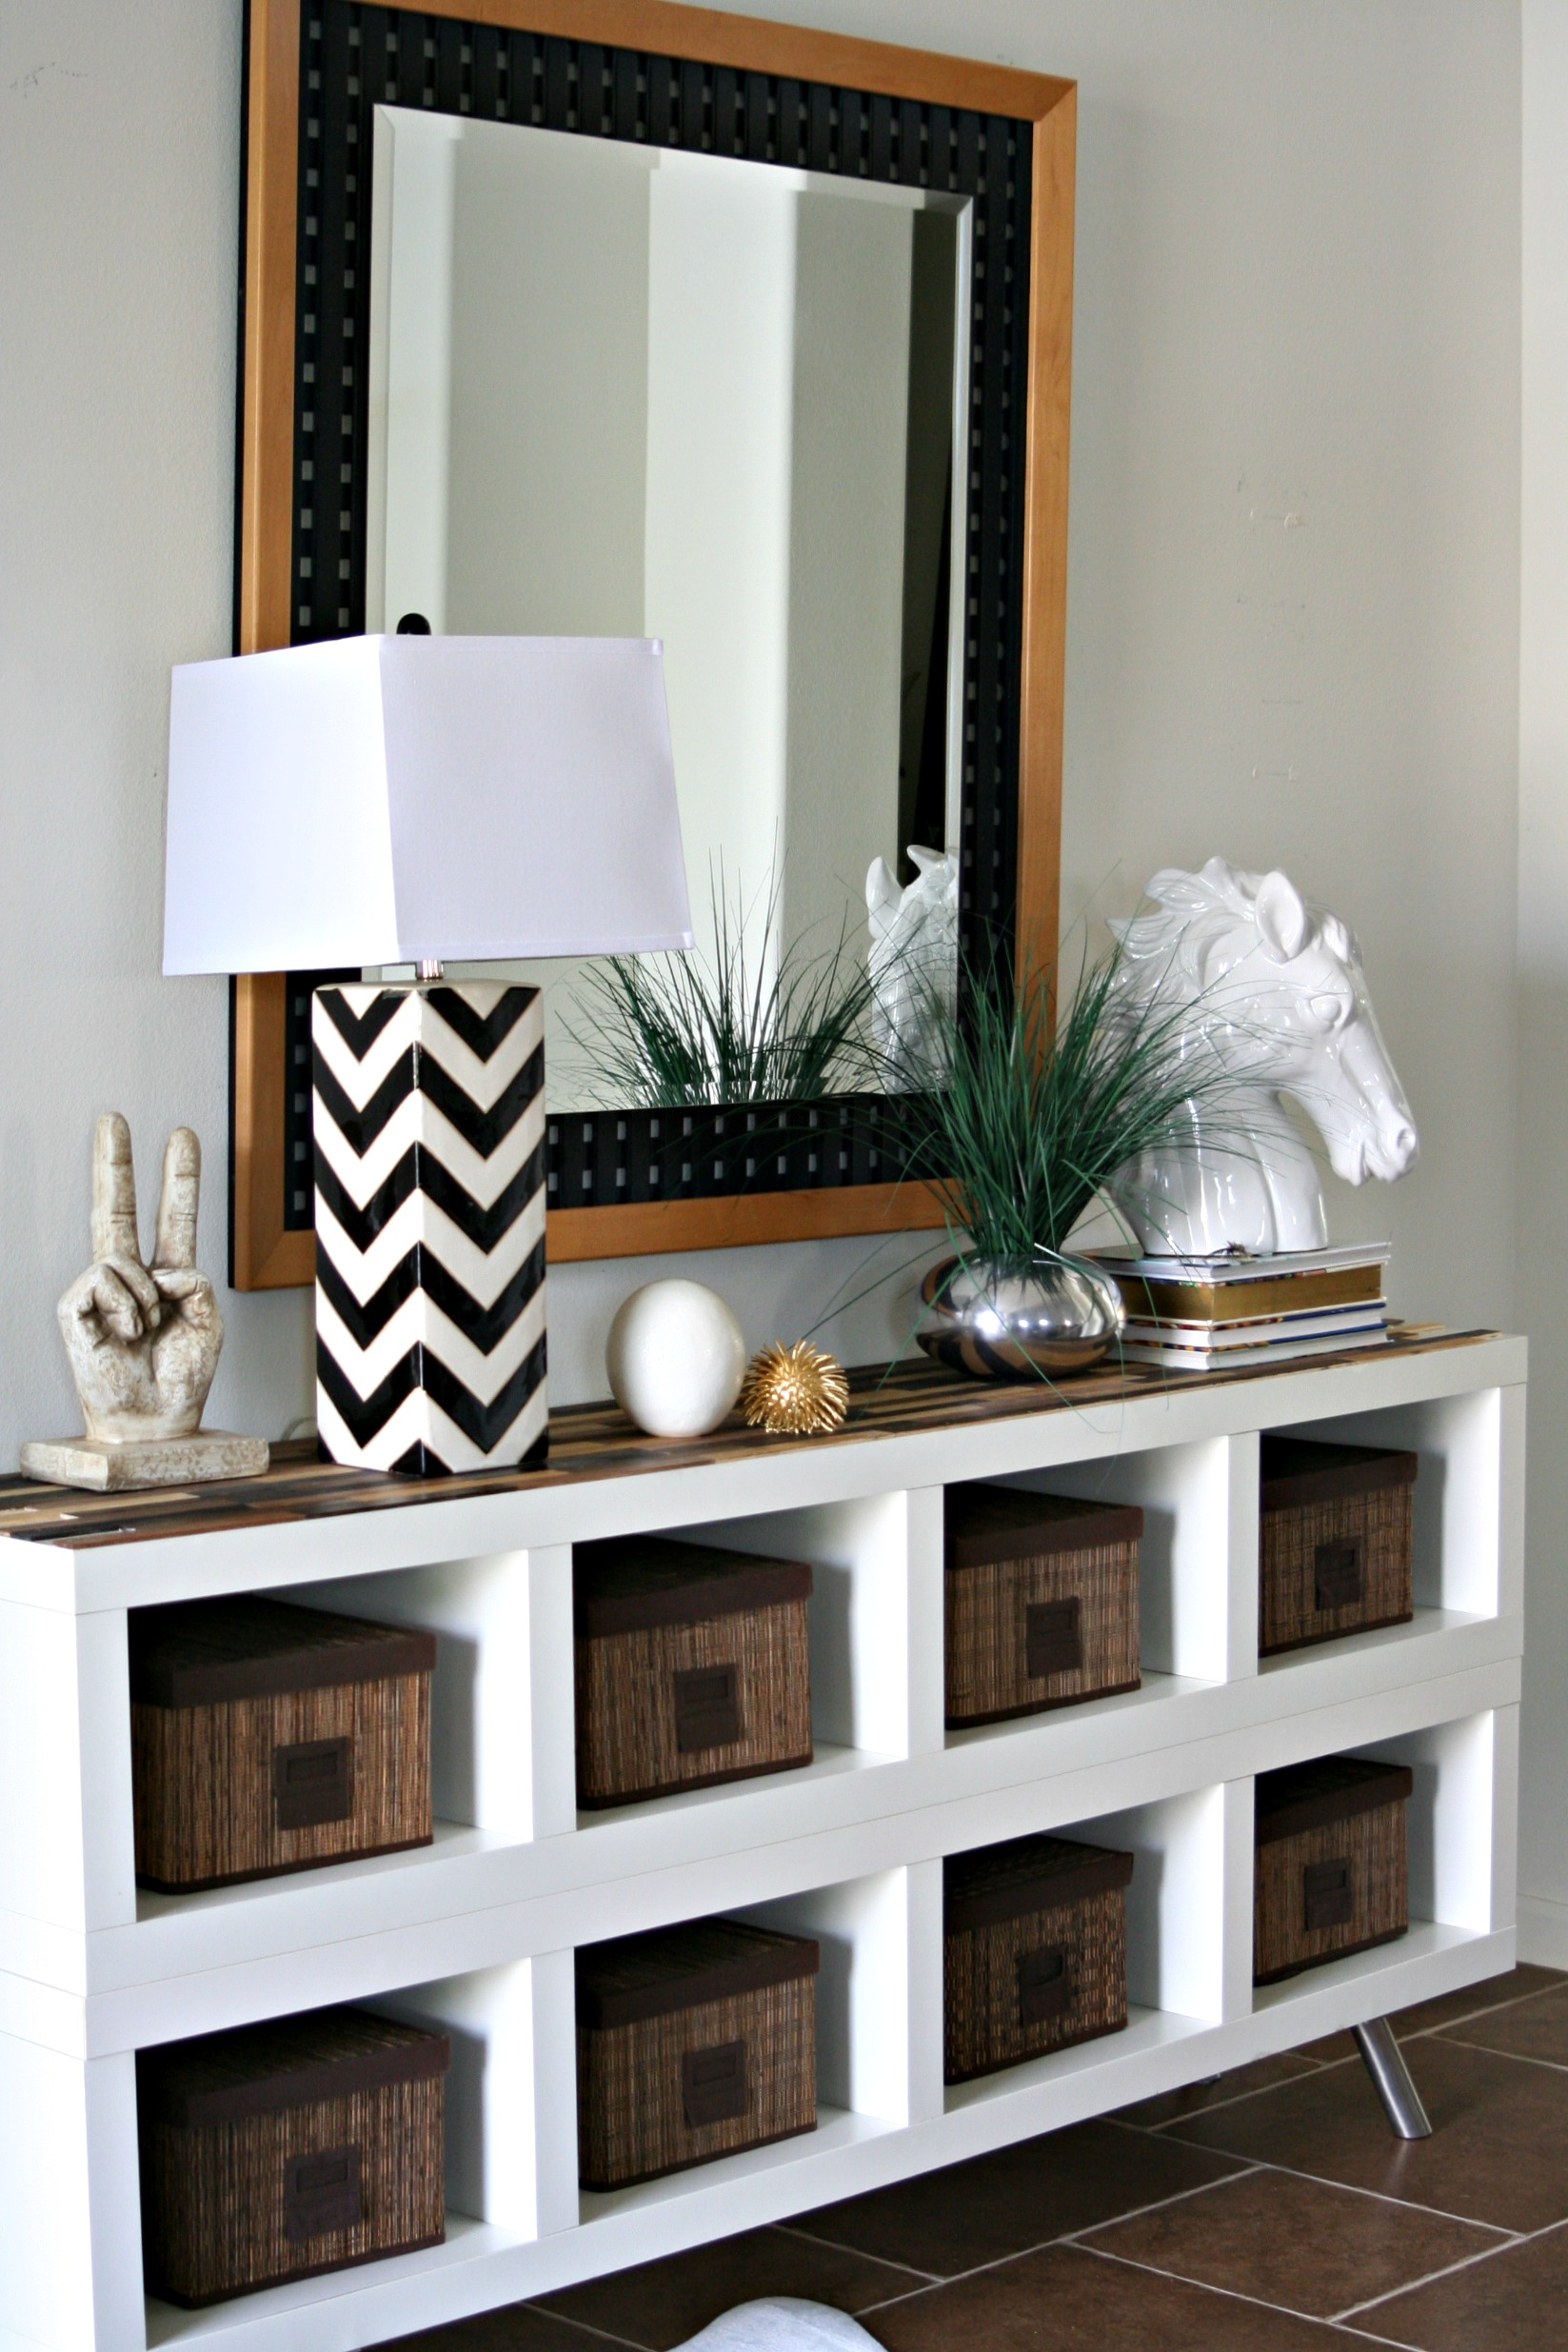 Transforming Expedit Shelves With Paint Sticks Ikea Hack Your Crafting E 51 Craft Room